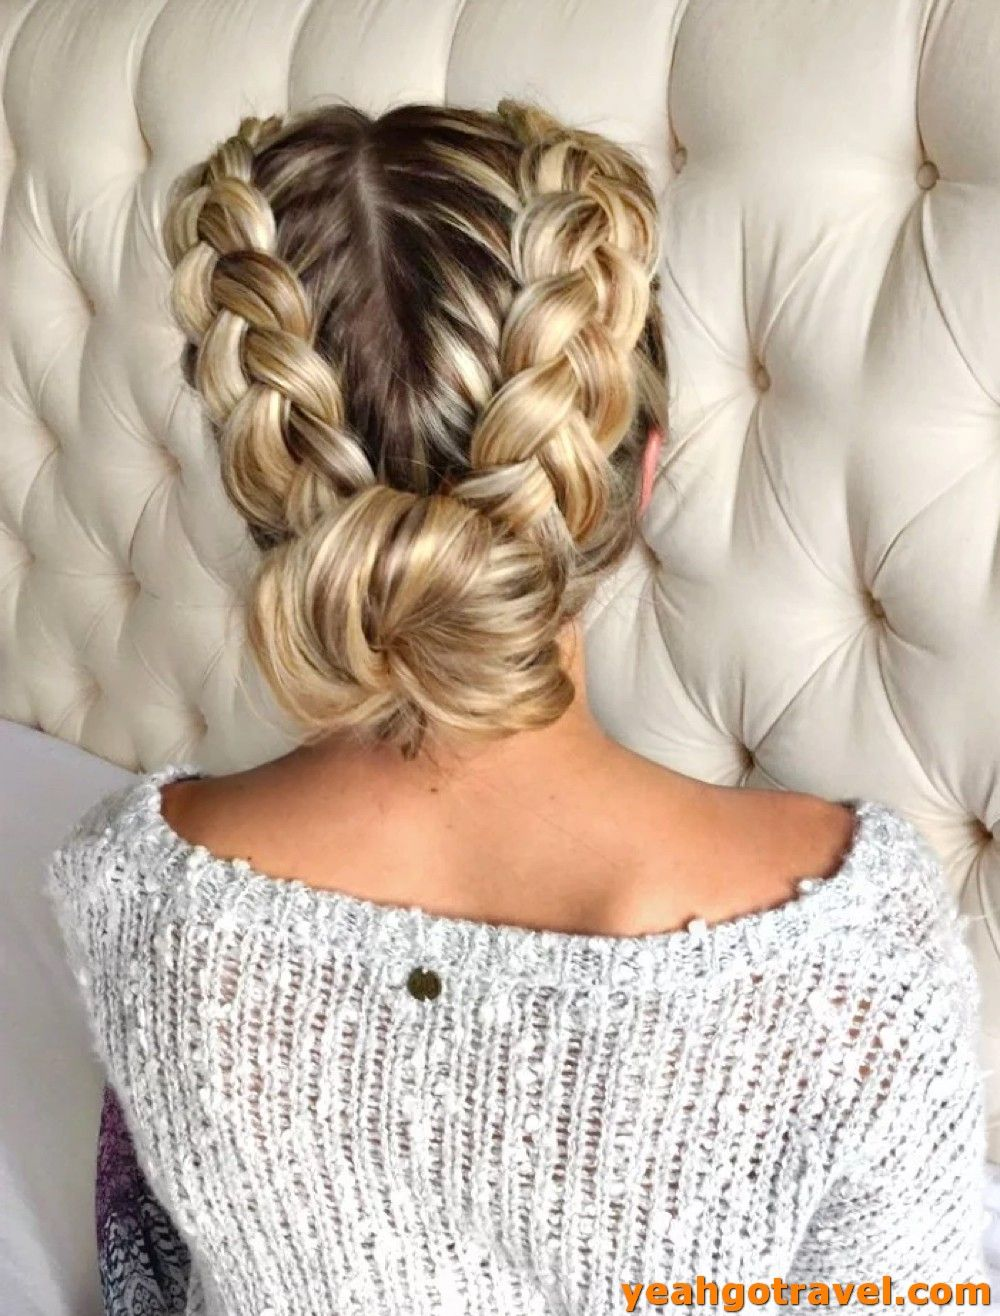 27 Simple Chic Braided Hairstyles Ideas